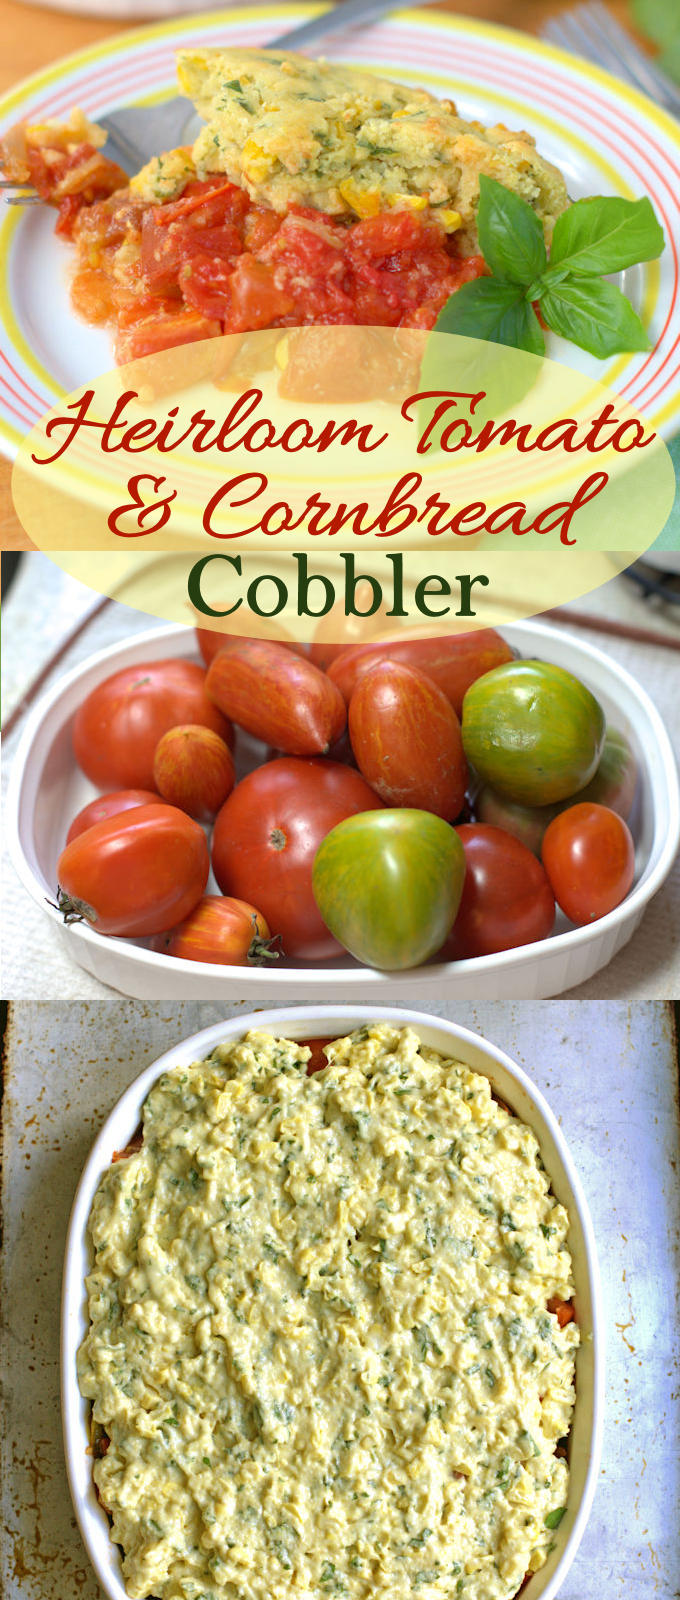 Cobblers are not only for dessert. Savory Tomato Cornbread cobbler is the perfect side dish or light meal using ripe summer tomatoes, corn and basil!